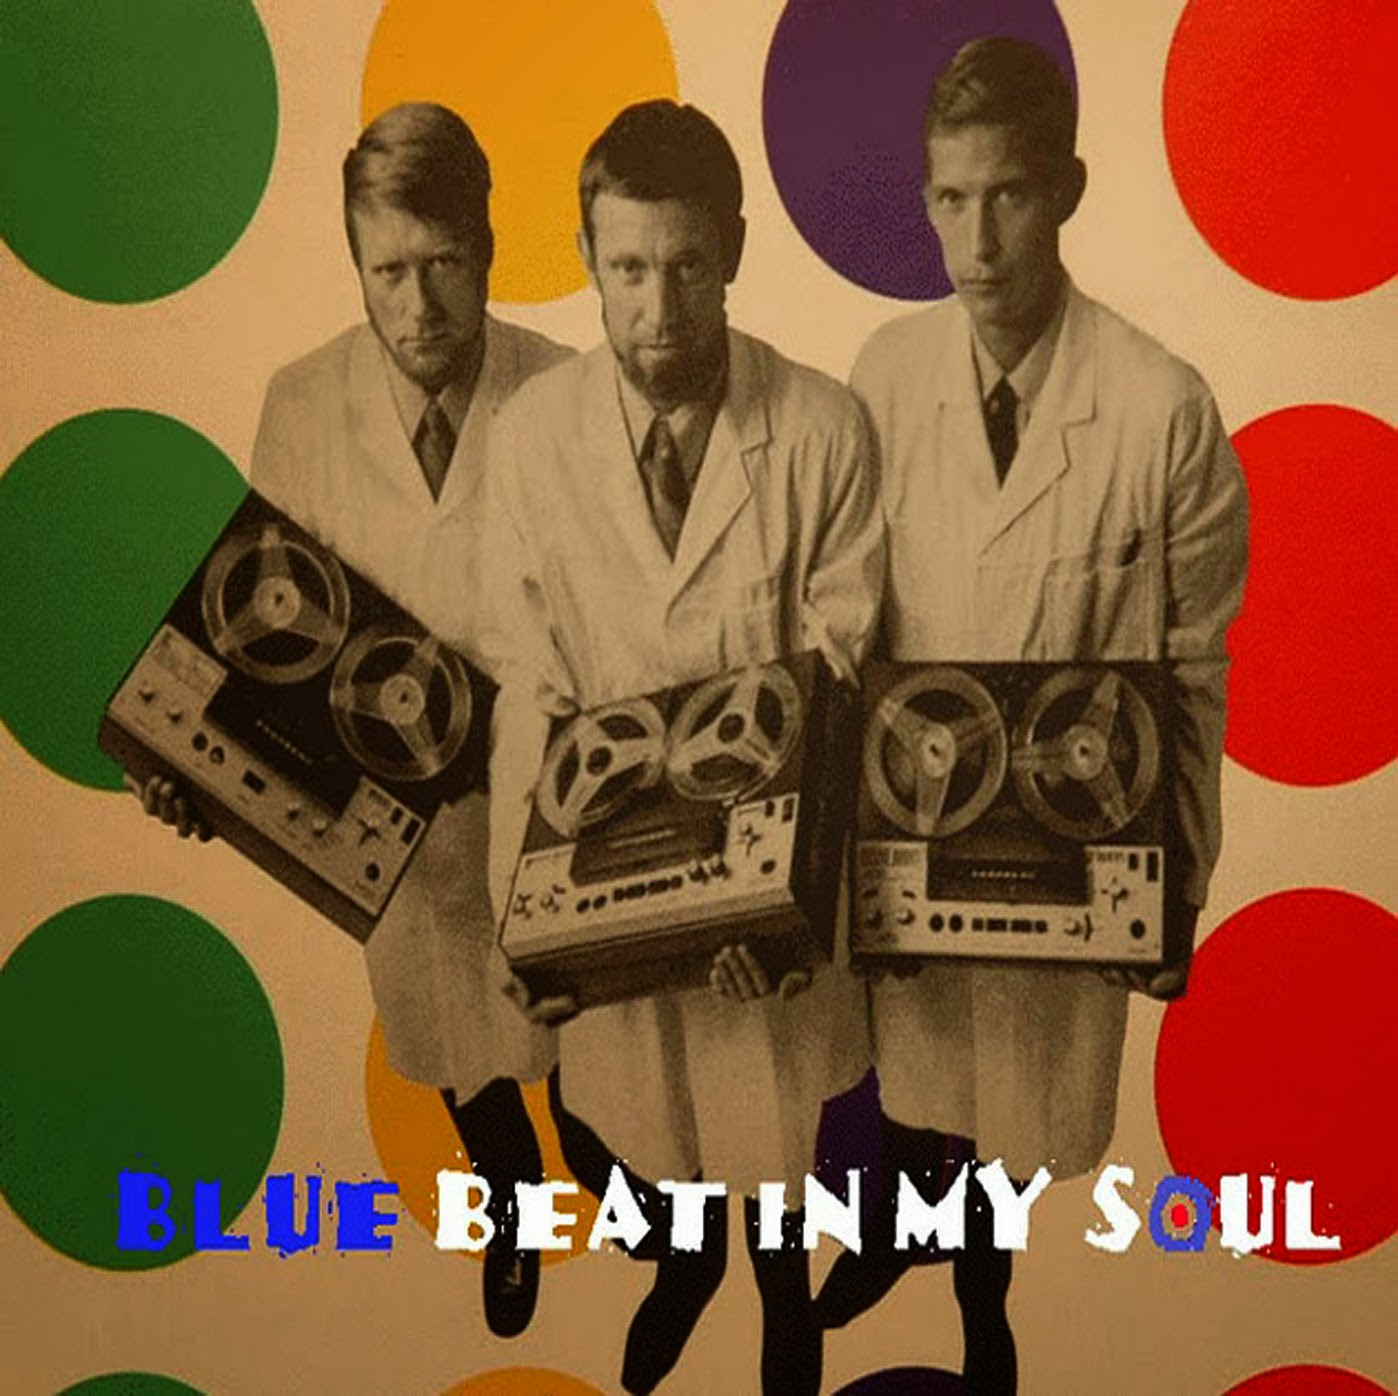 Blue Beat In My Soul